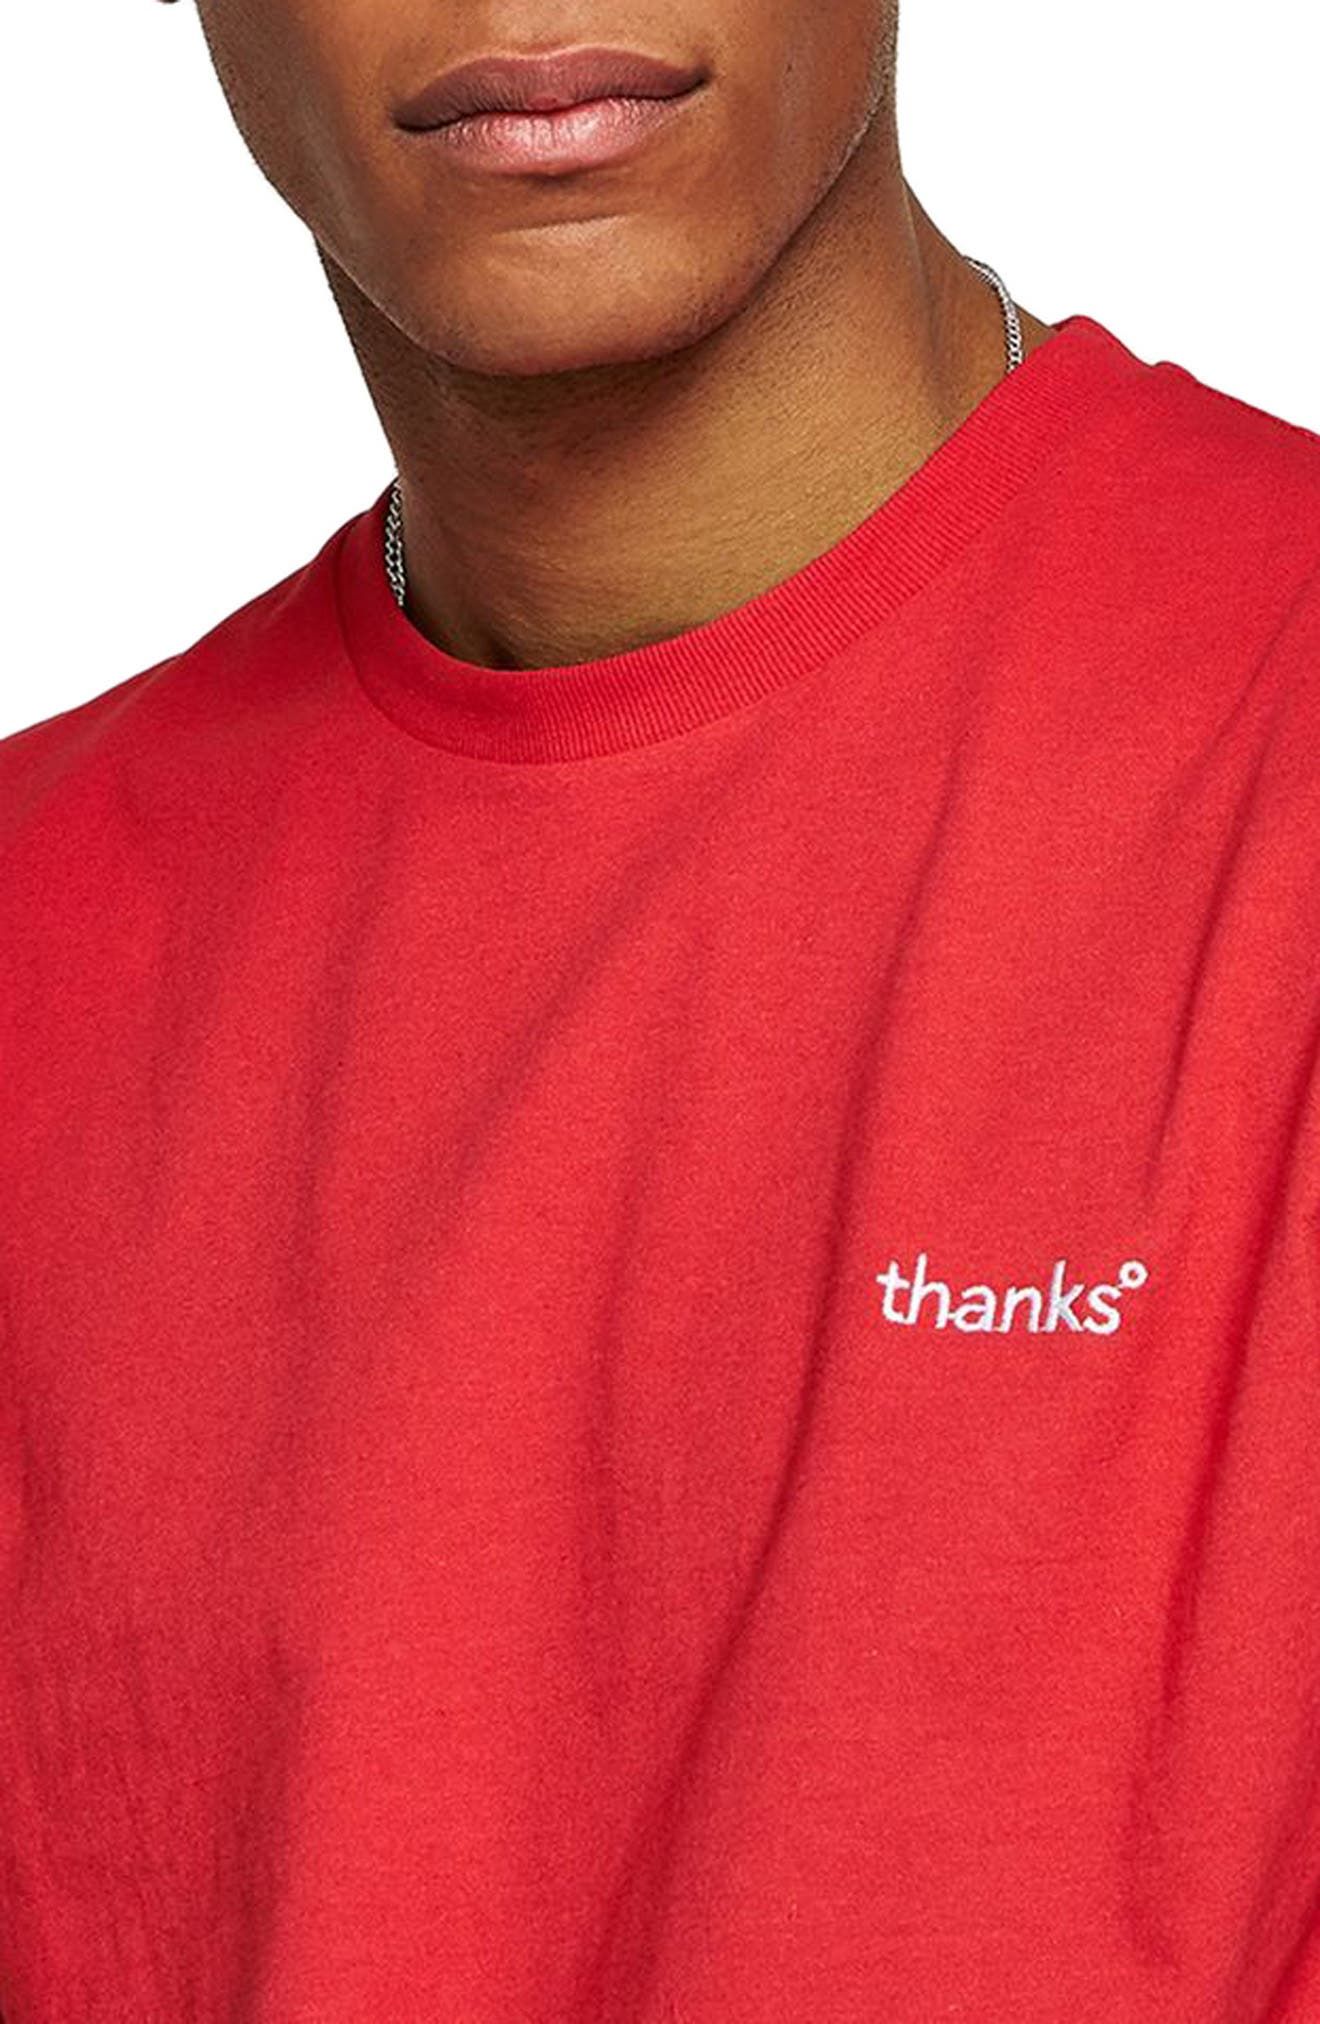 Oversize Embroidered Thanks T-Shirt,                             Alternate thumbnail 3, color,